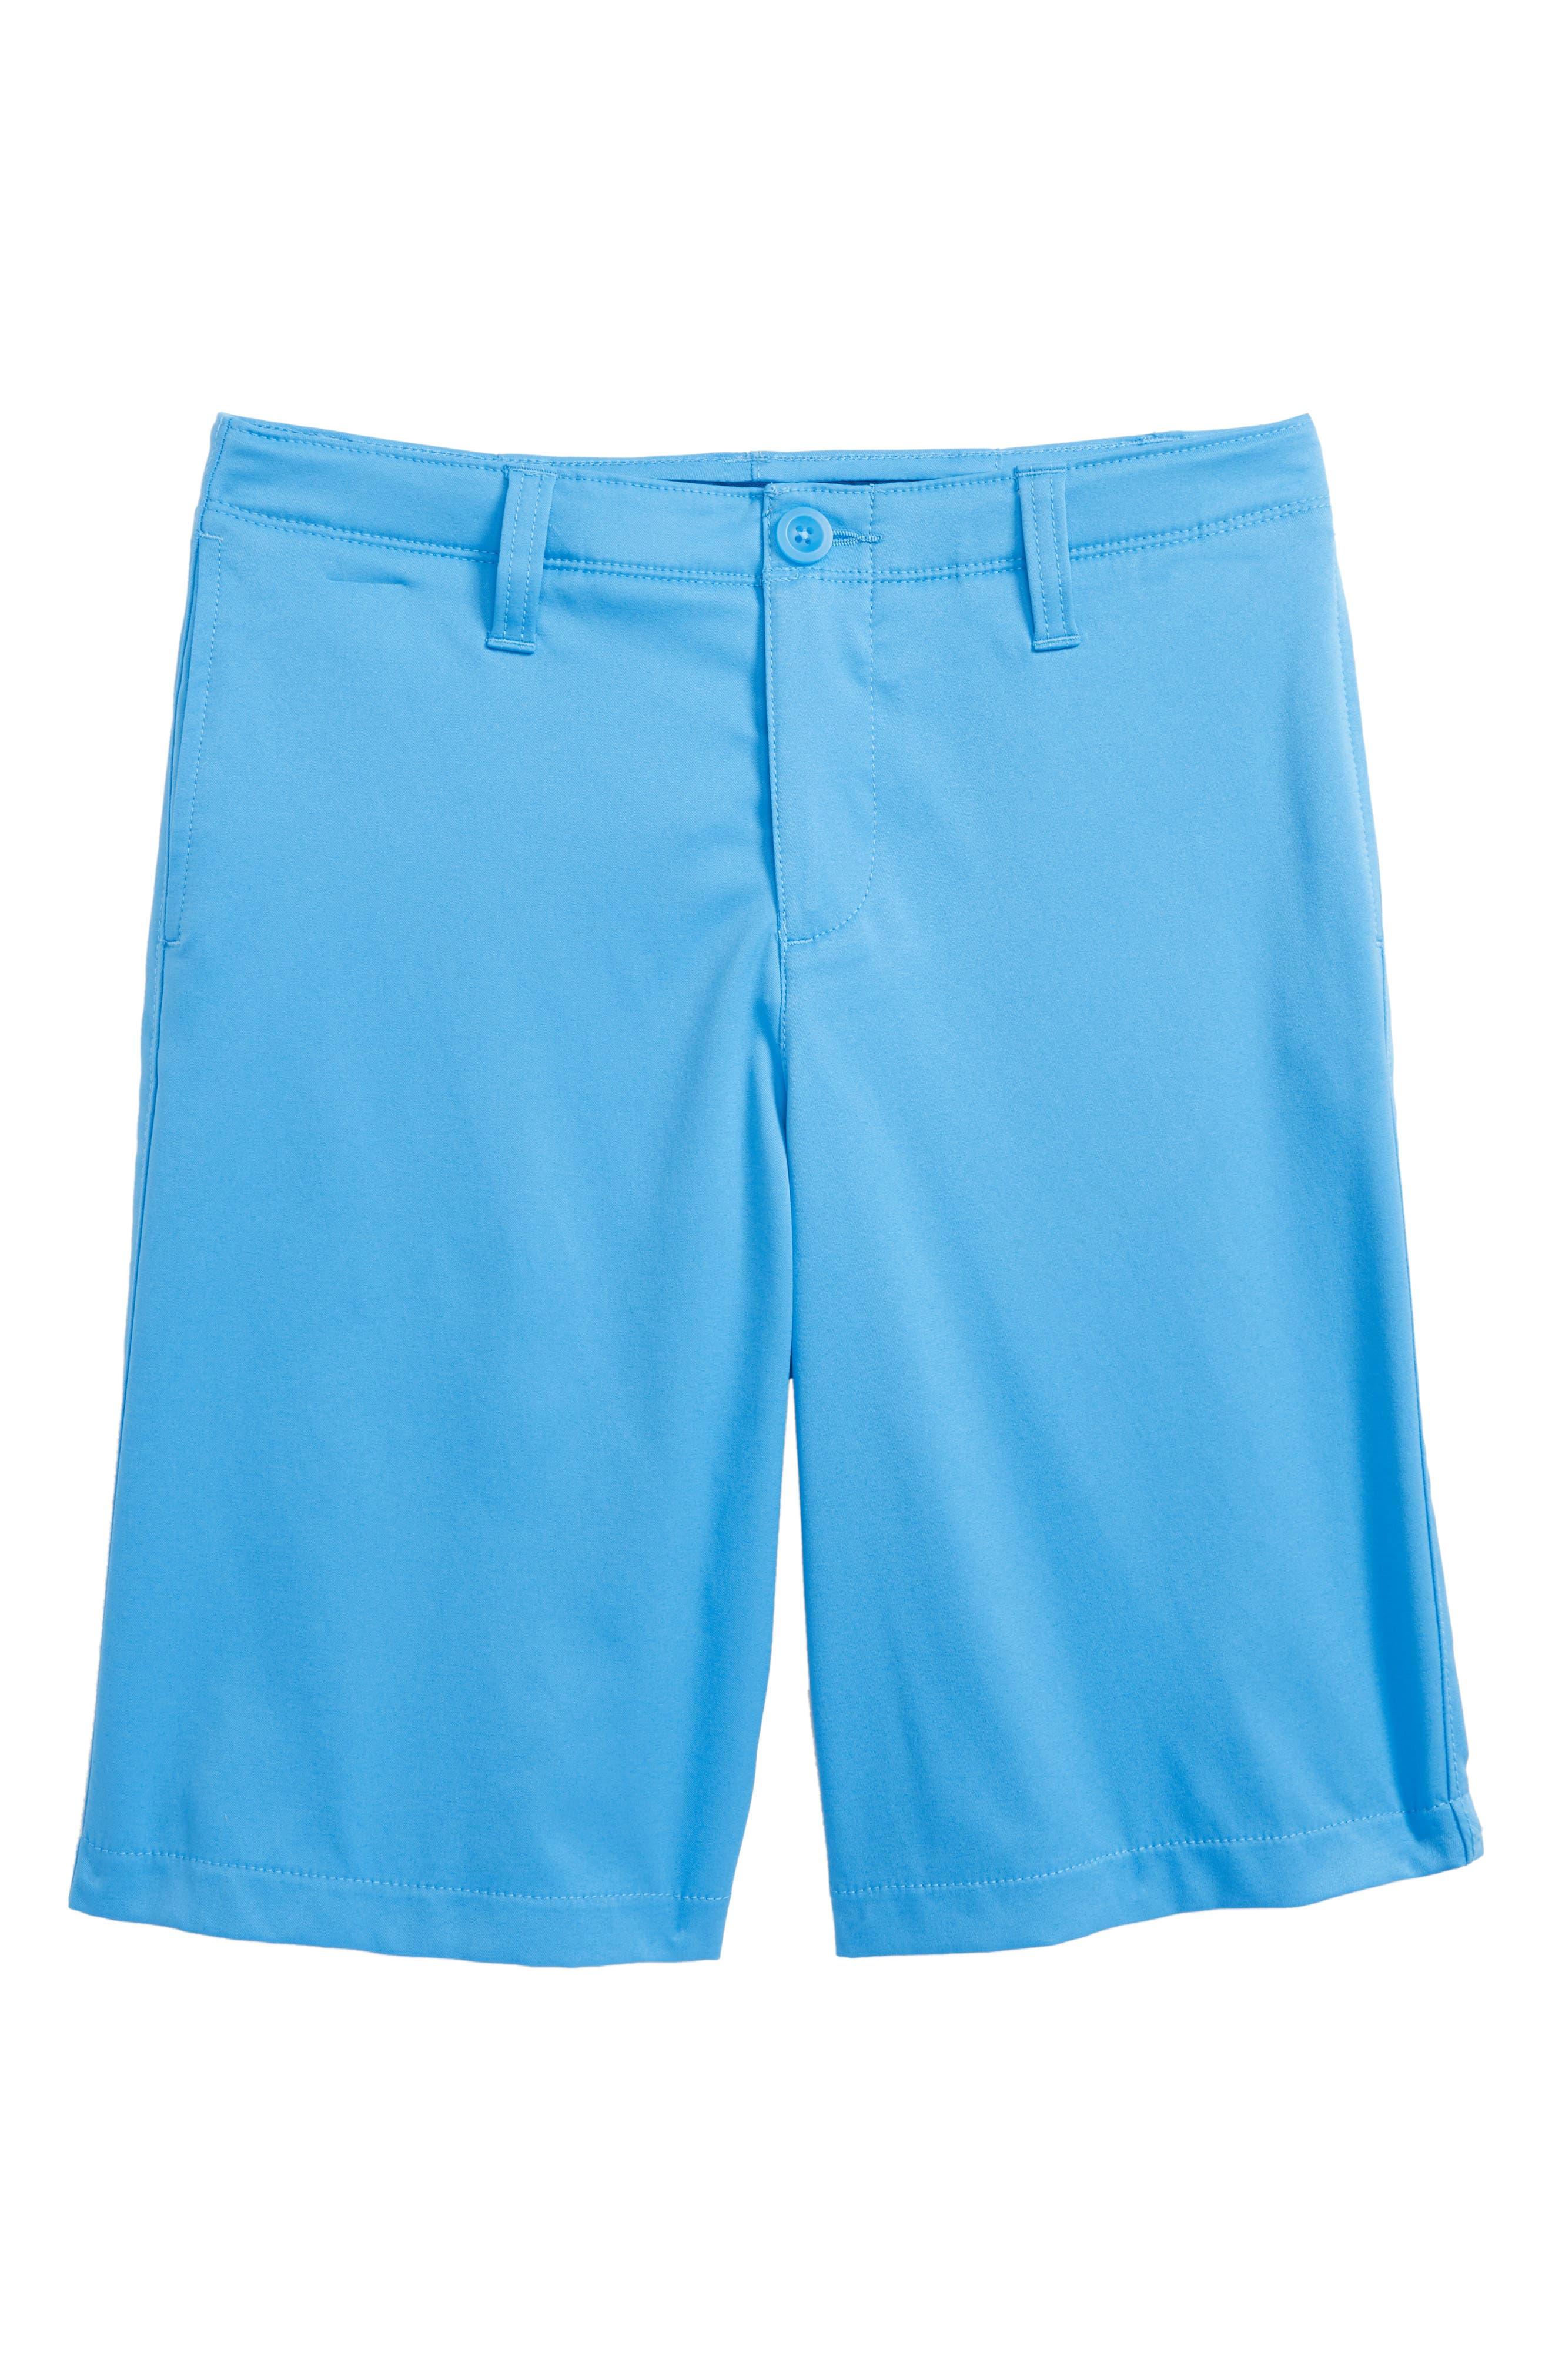 Match Play Shorts,                             Main thumbnail 1, color,                             Canoe Blue/ Moroccan Blue